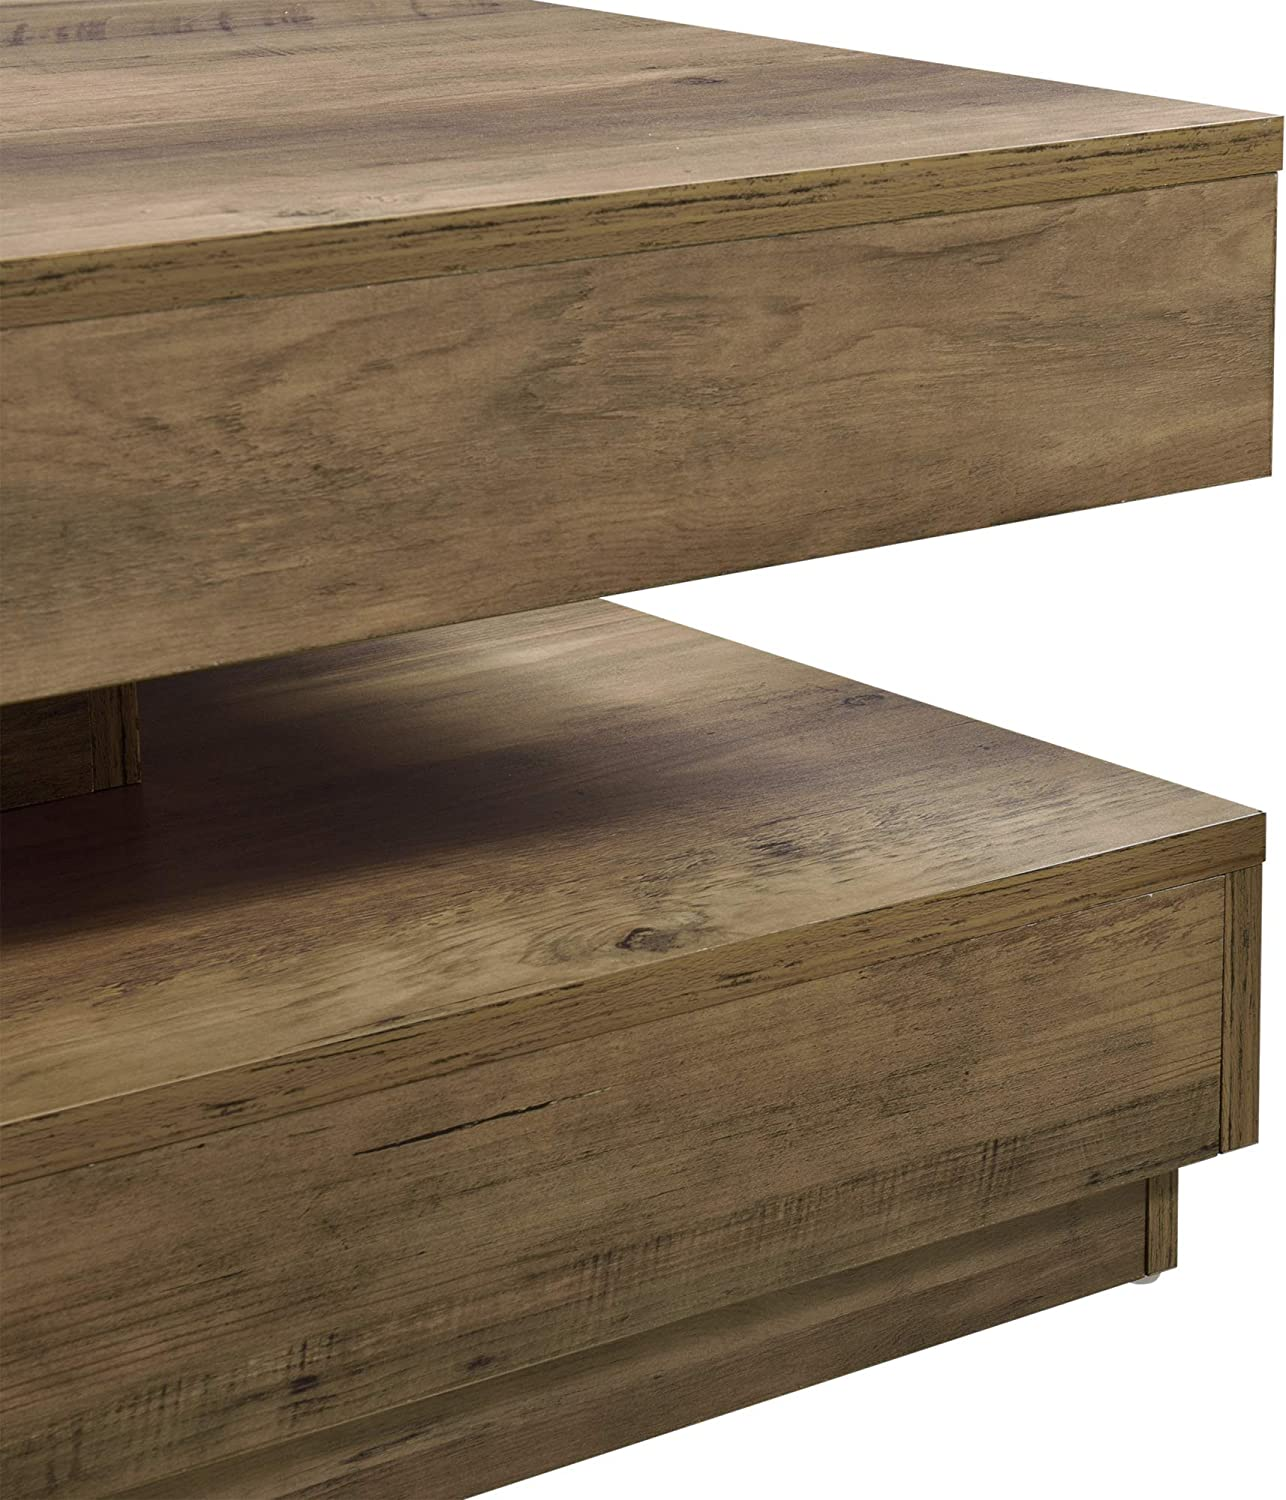 [en.casa] Coffee Table Living Room Furniture with Storage 76x76x38cm Particleboard in Concrete Color Wood